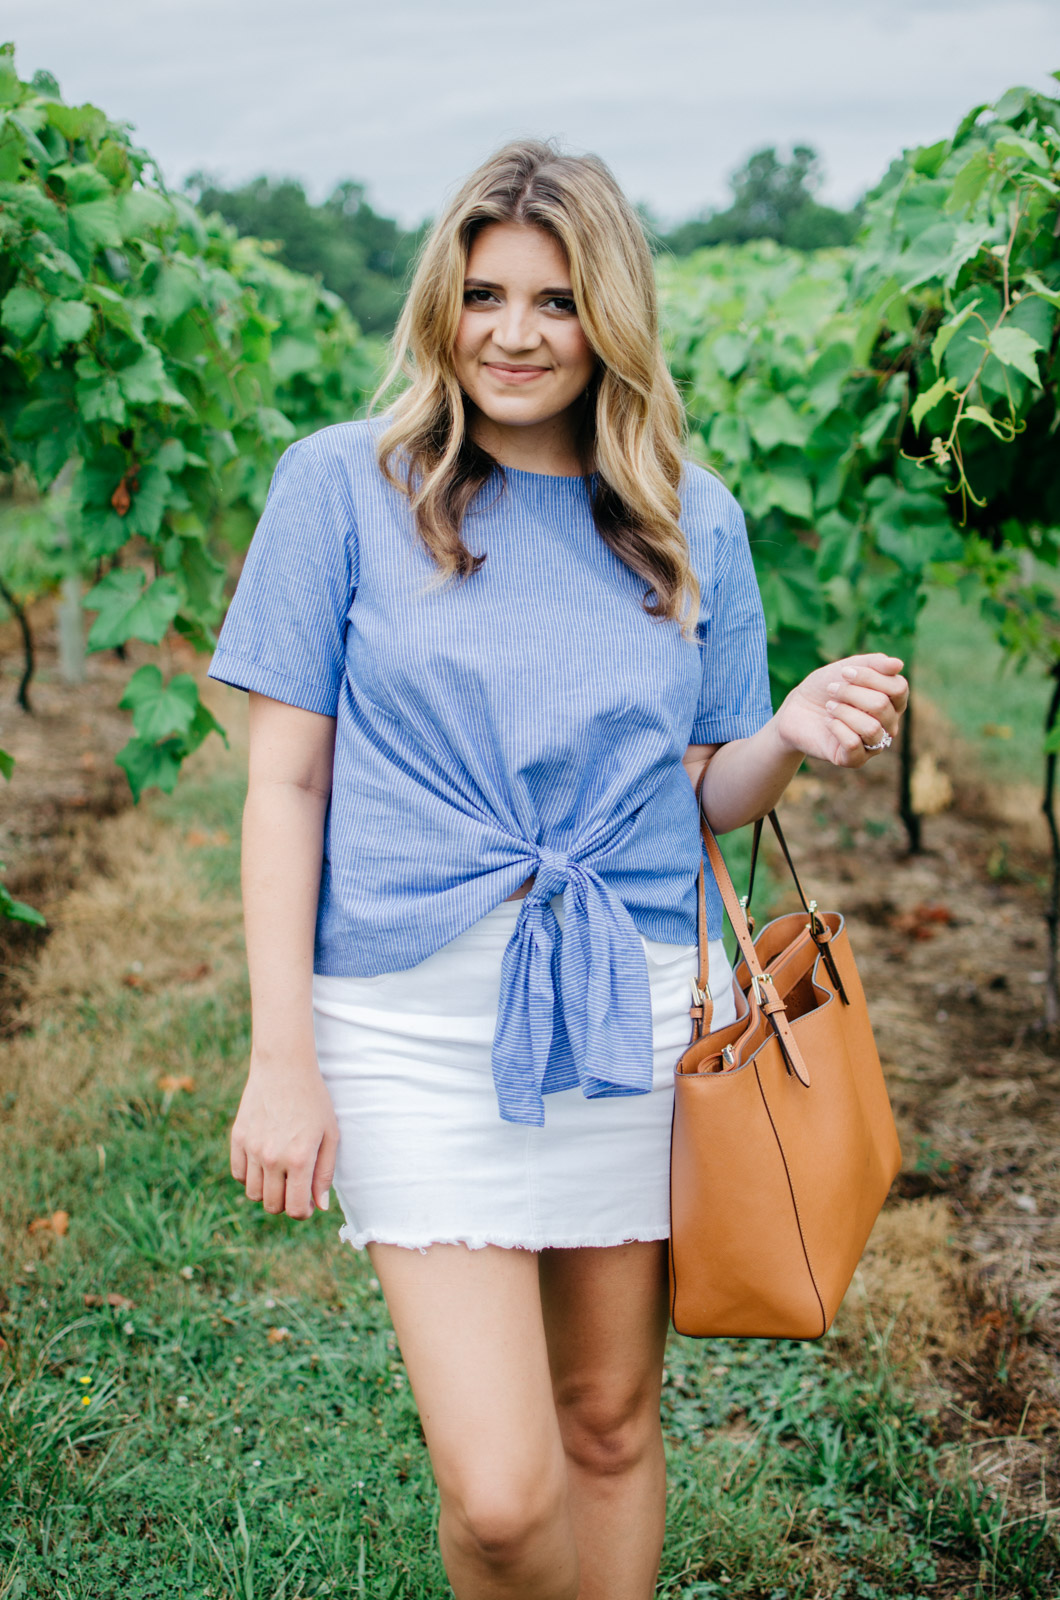 winery outfit idea - tie front top   Want more cute Summer outfits? Head to bylaurenm.com!